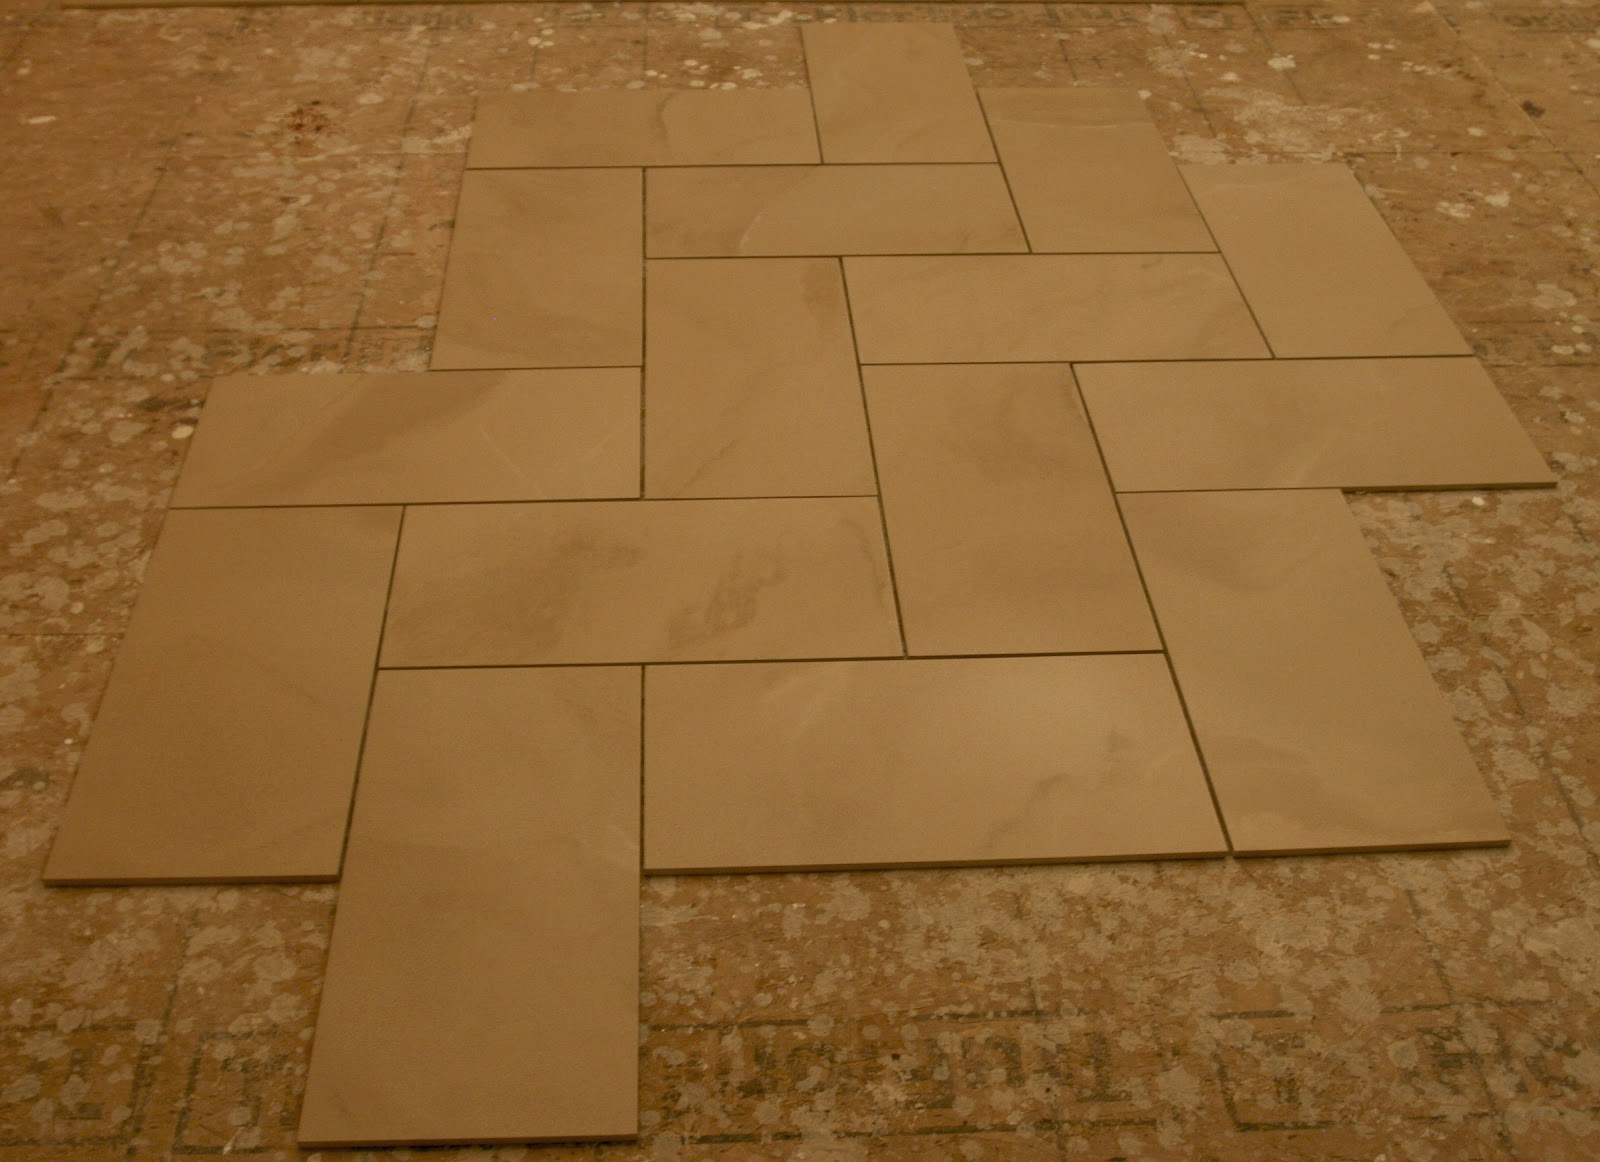 Floor Tile Patterns For Small Bathrooms Floor Tile Patterns For